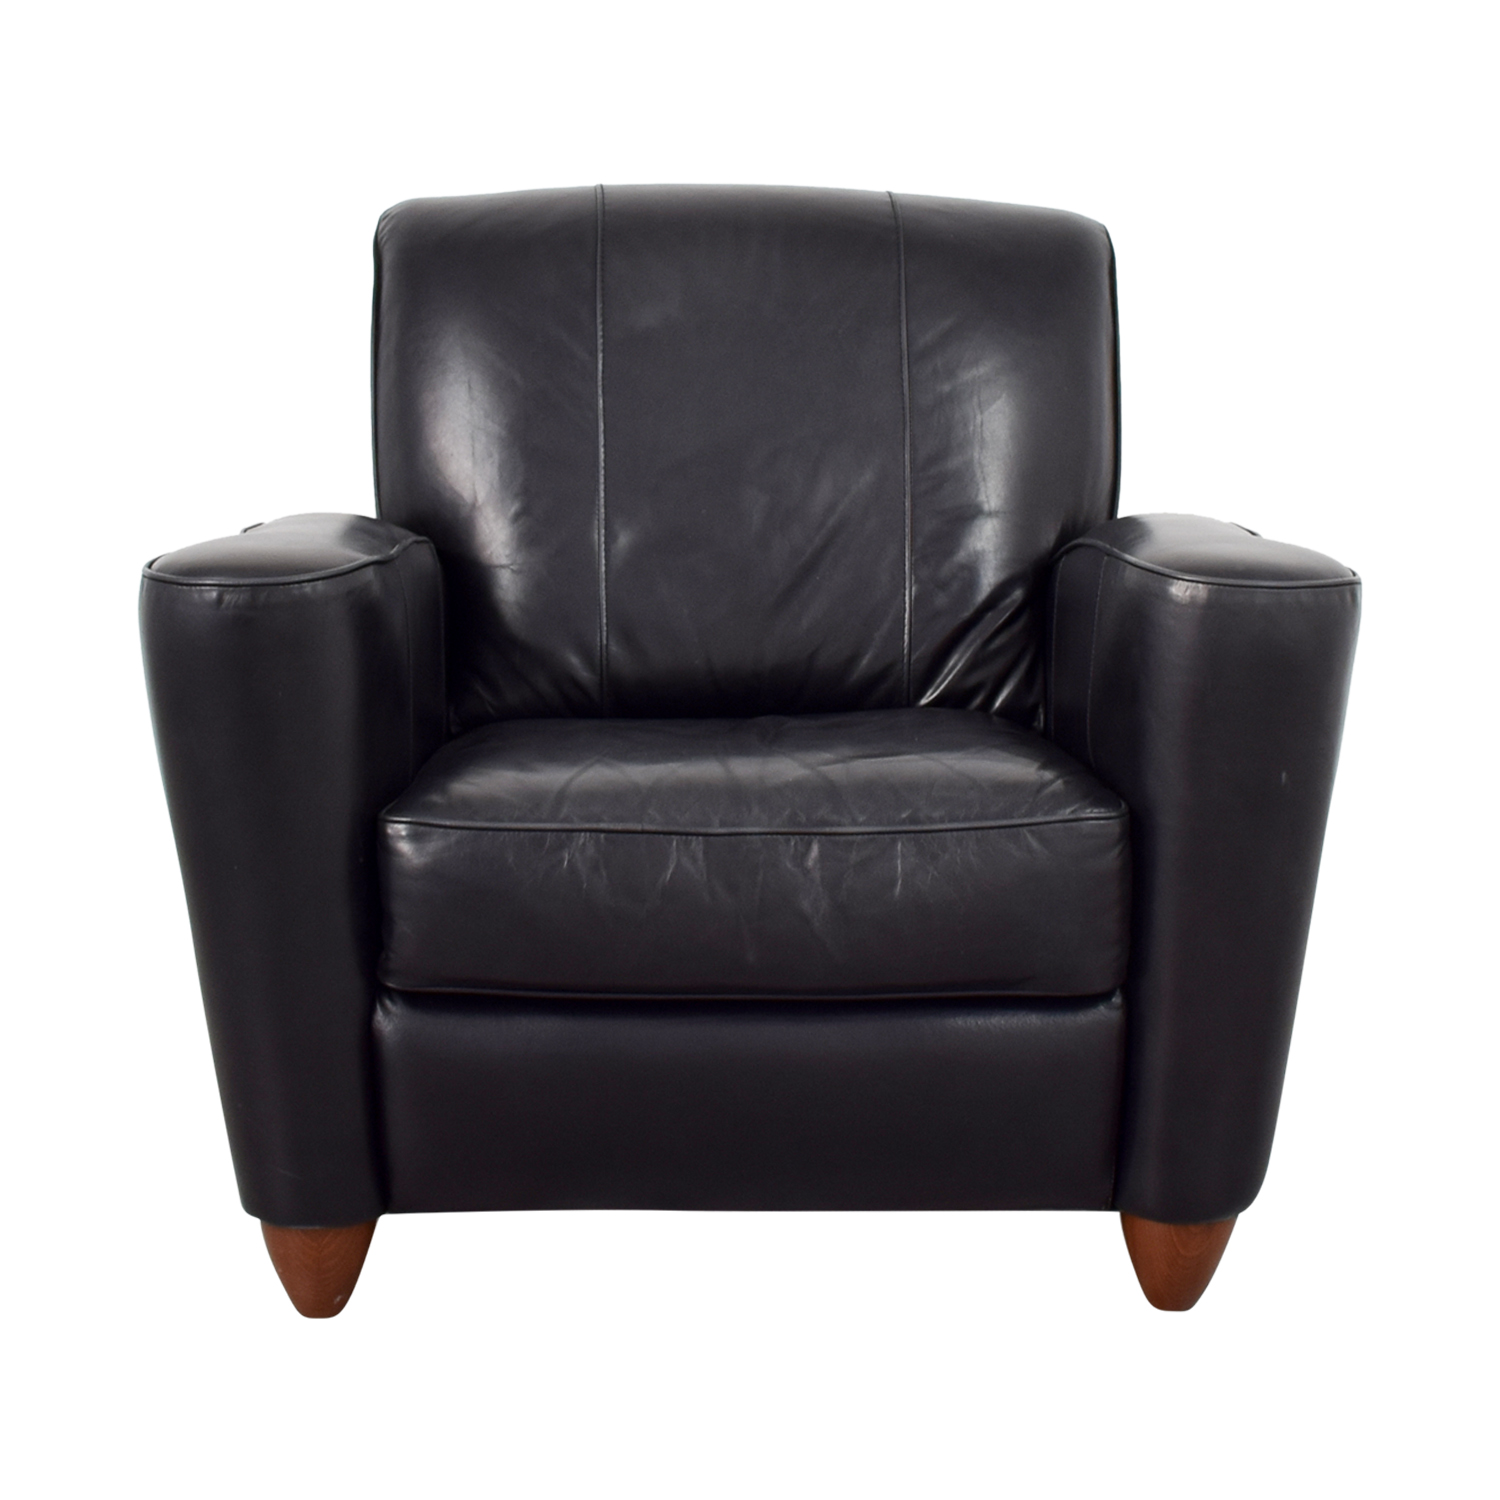 59% OFF Leather Library Reading Chair Chairs